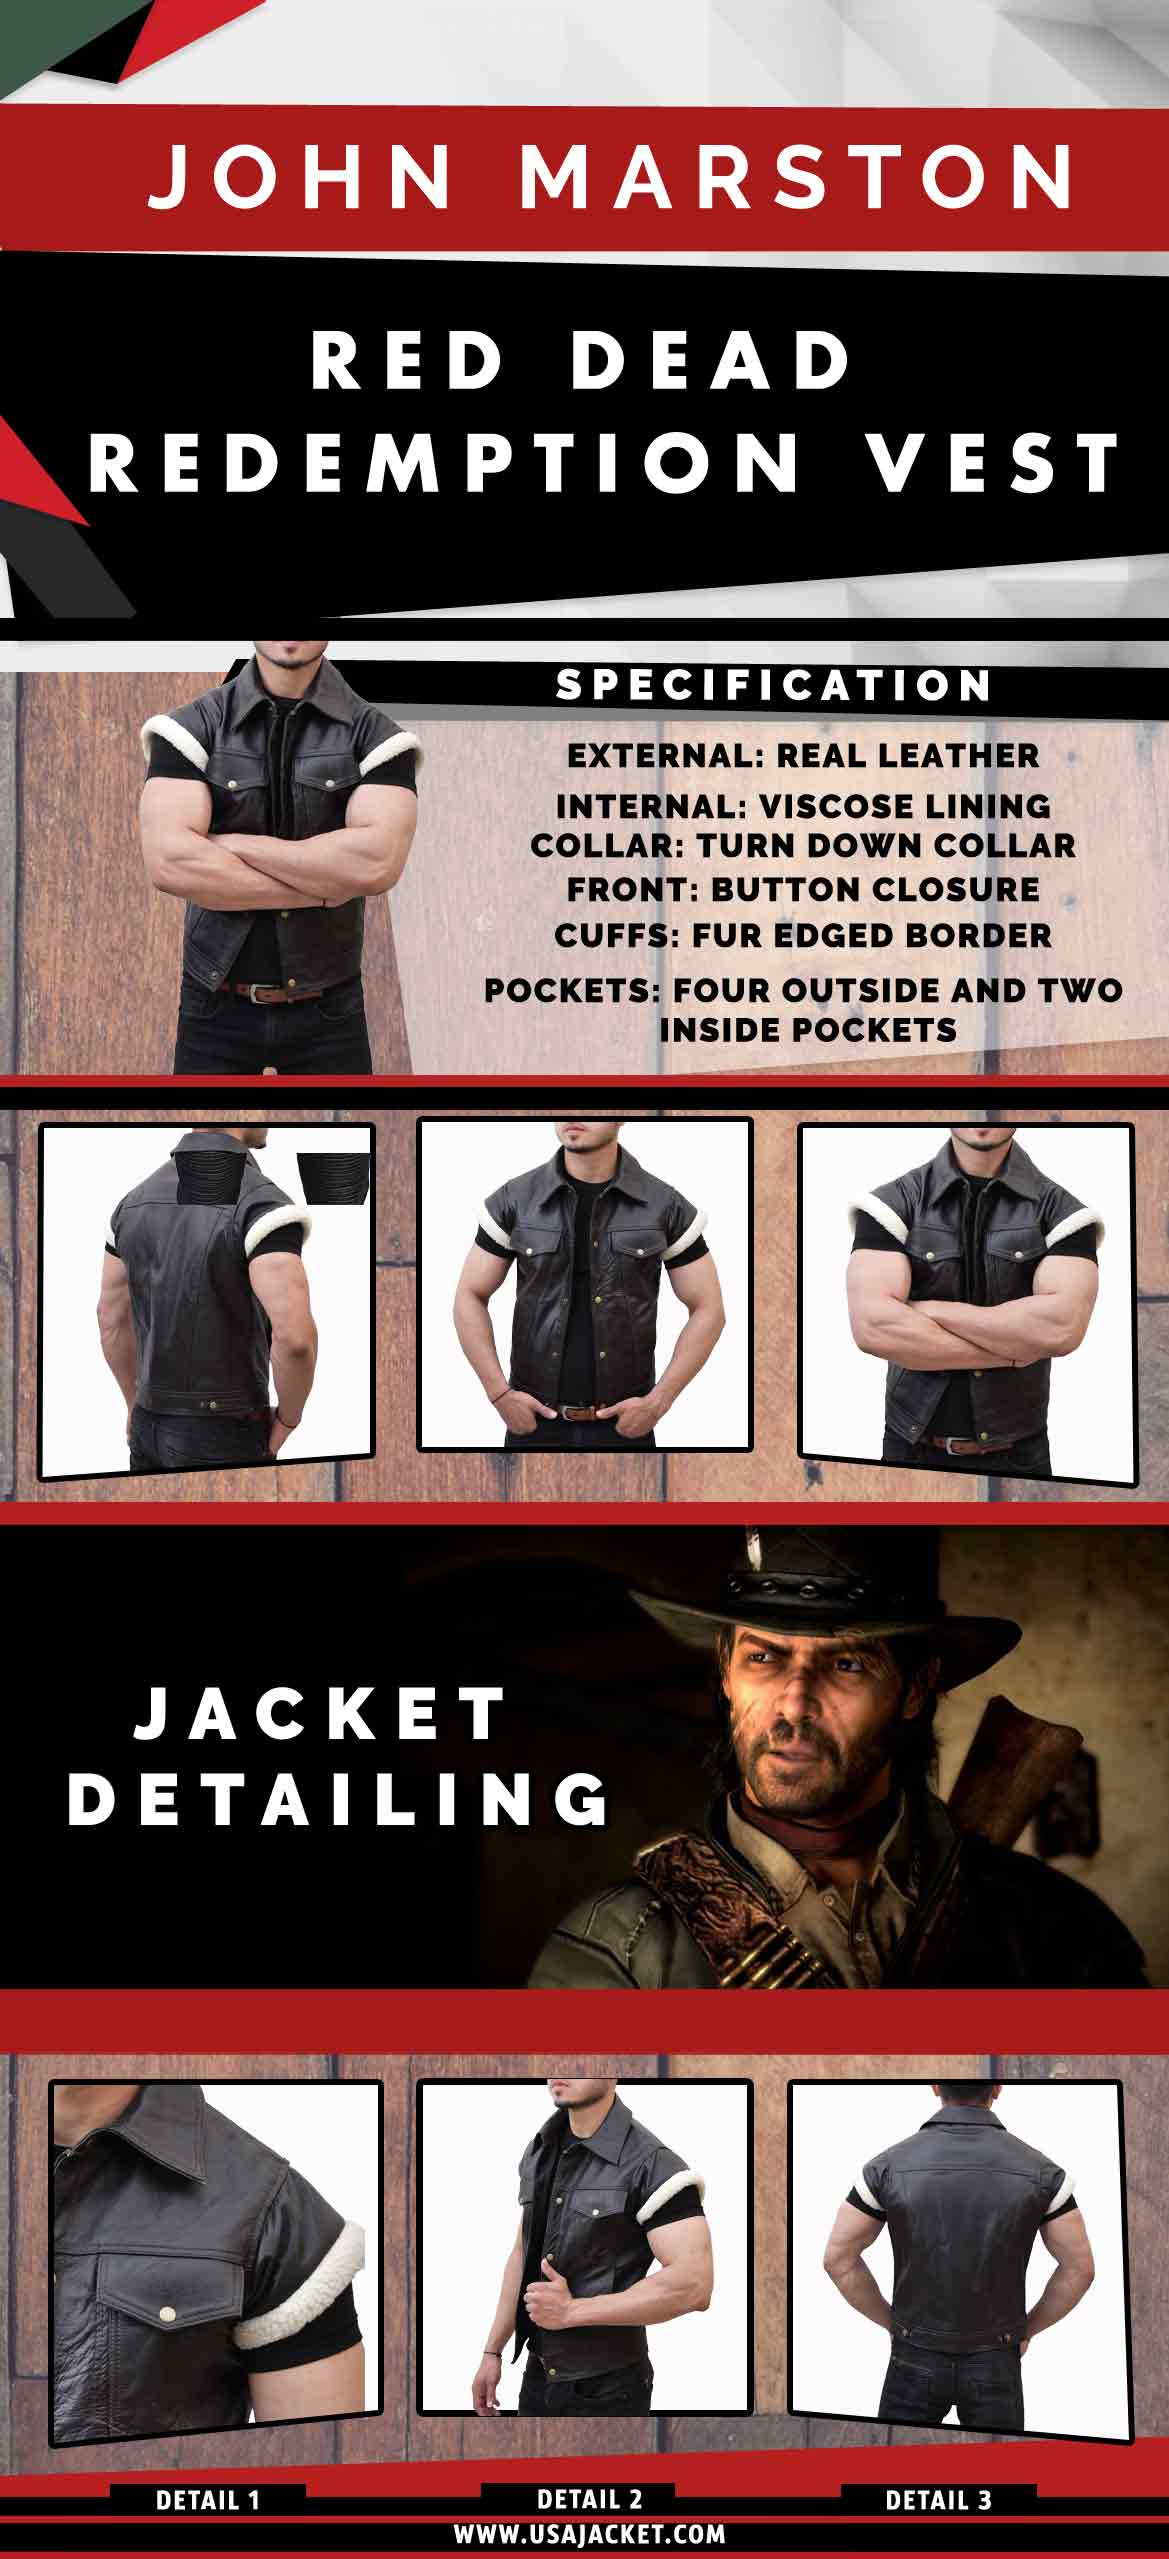 John-Marston-Red-Dead-Redemption-Vest-usa